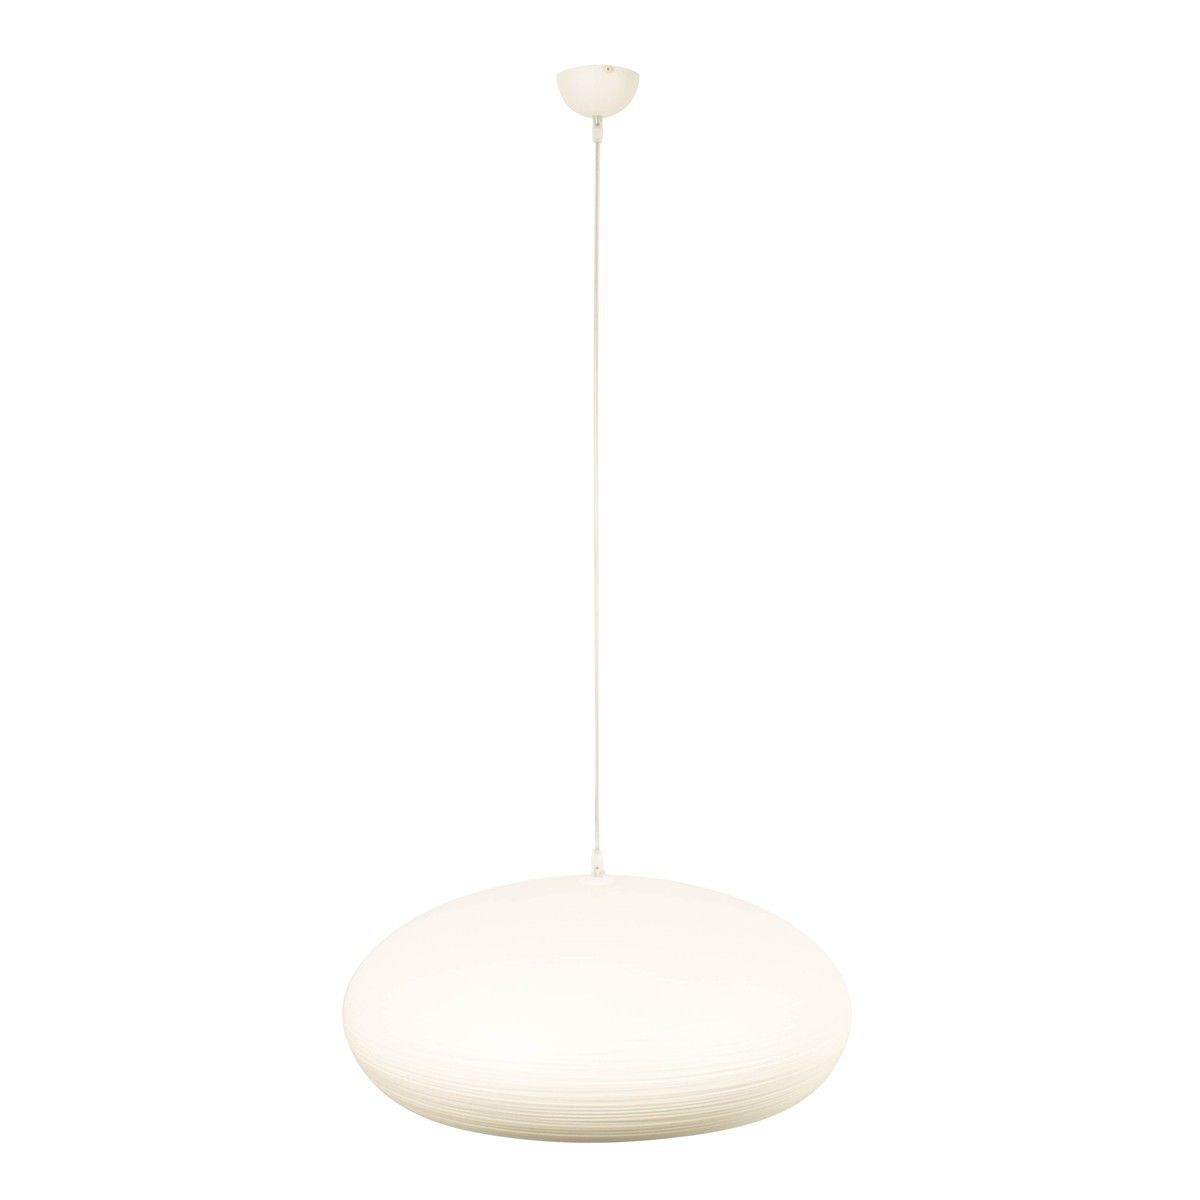 Suspension Blanche Illuminez Votre Intérieur Avec La Suspension Suspension Design